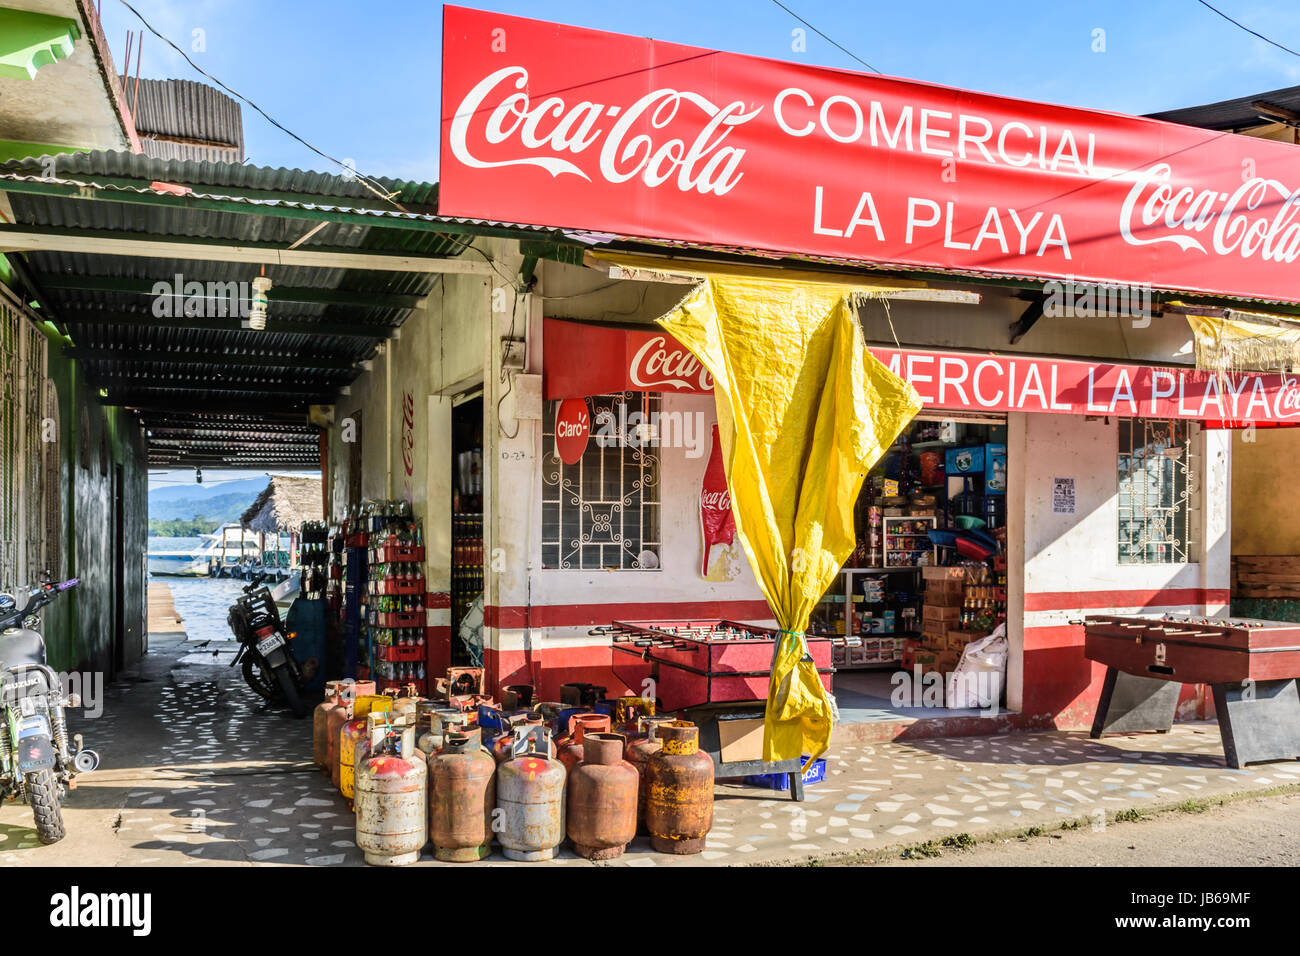 Livingston, Guatemala - August 31, 2016: Alleyway leads to moored boats at wooden dock next to riverside store in - Stock Image